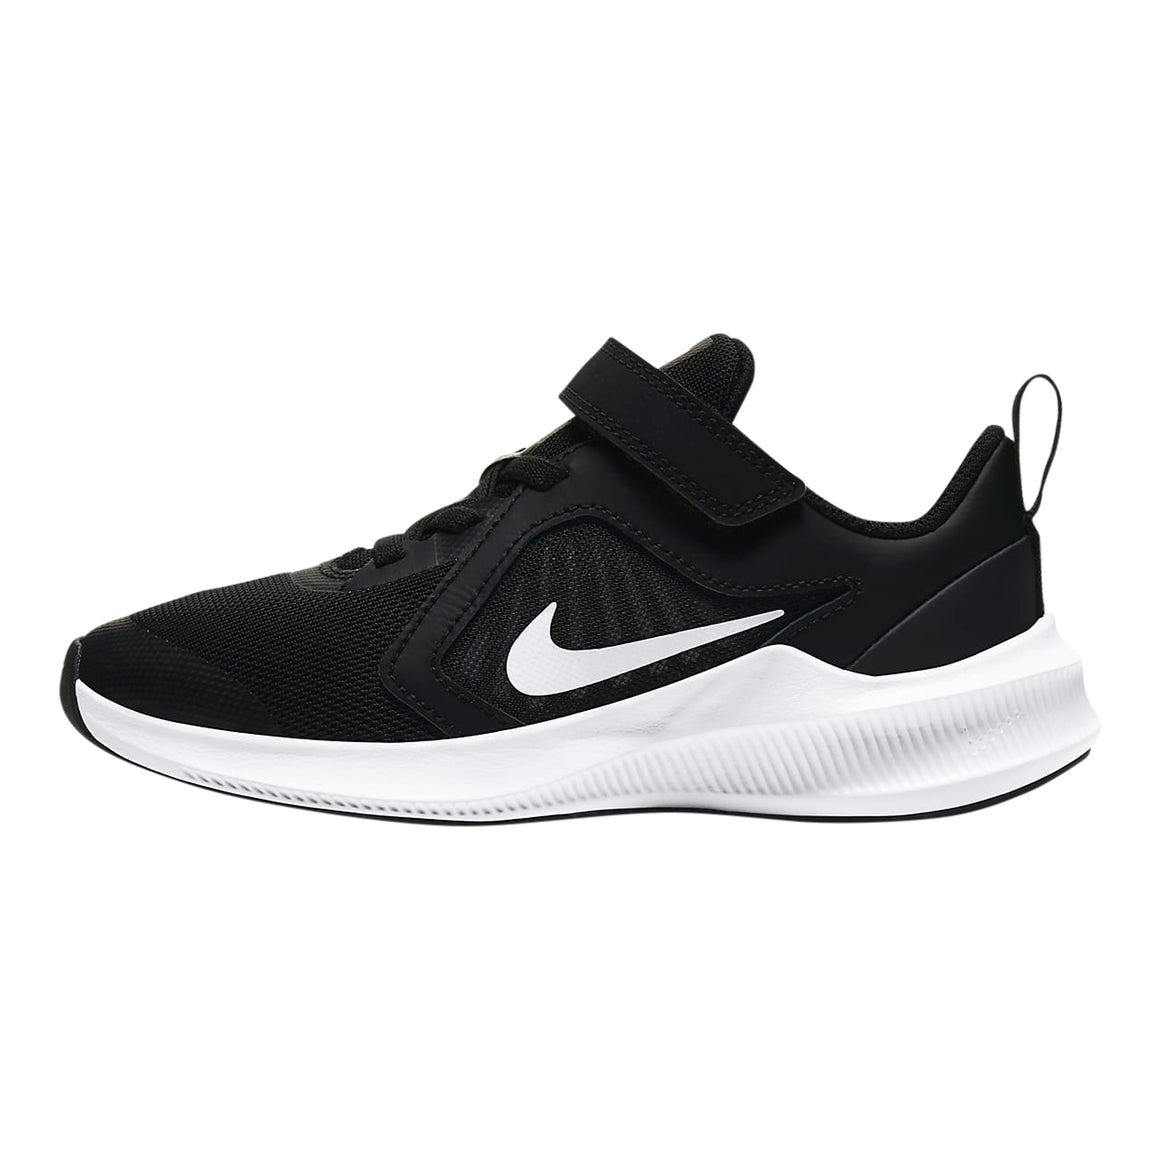 Downshifter 10 Running Shoes for Younger Kids in Black/White-Anthracite